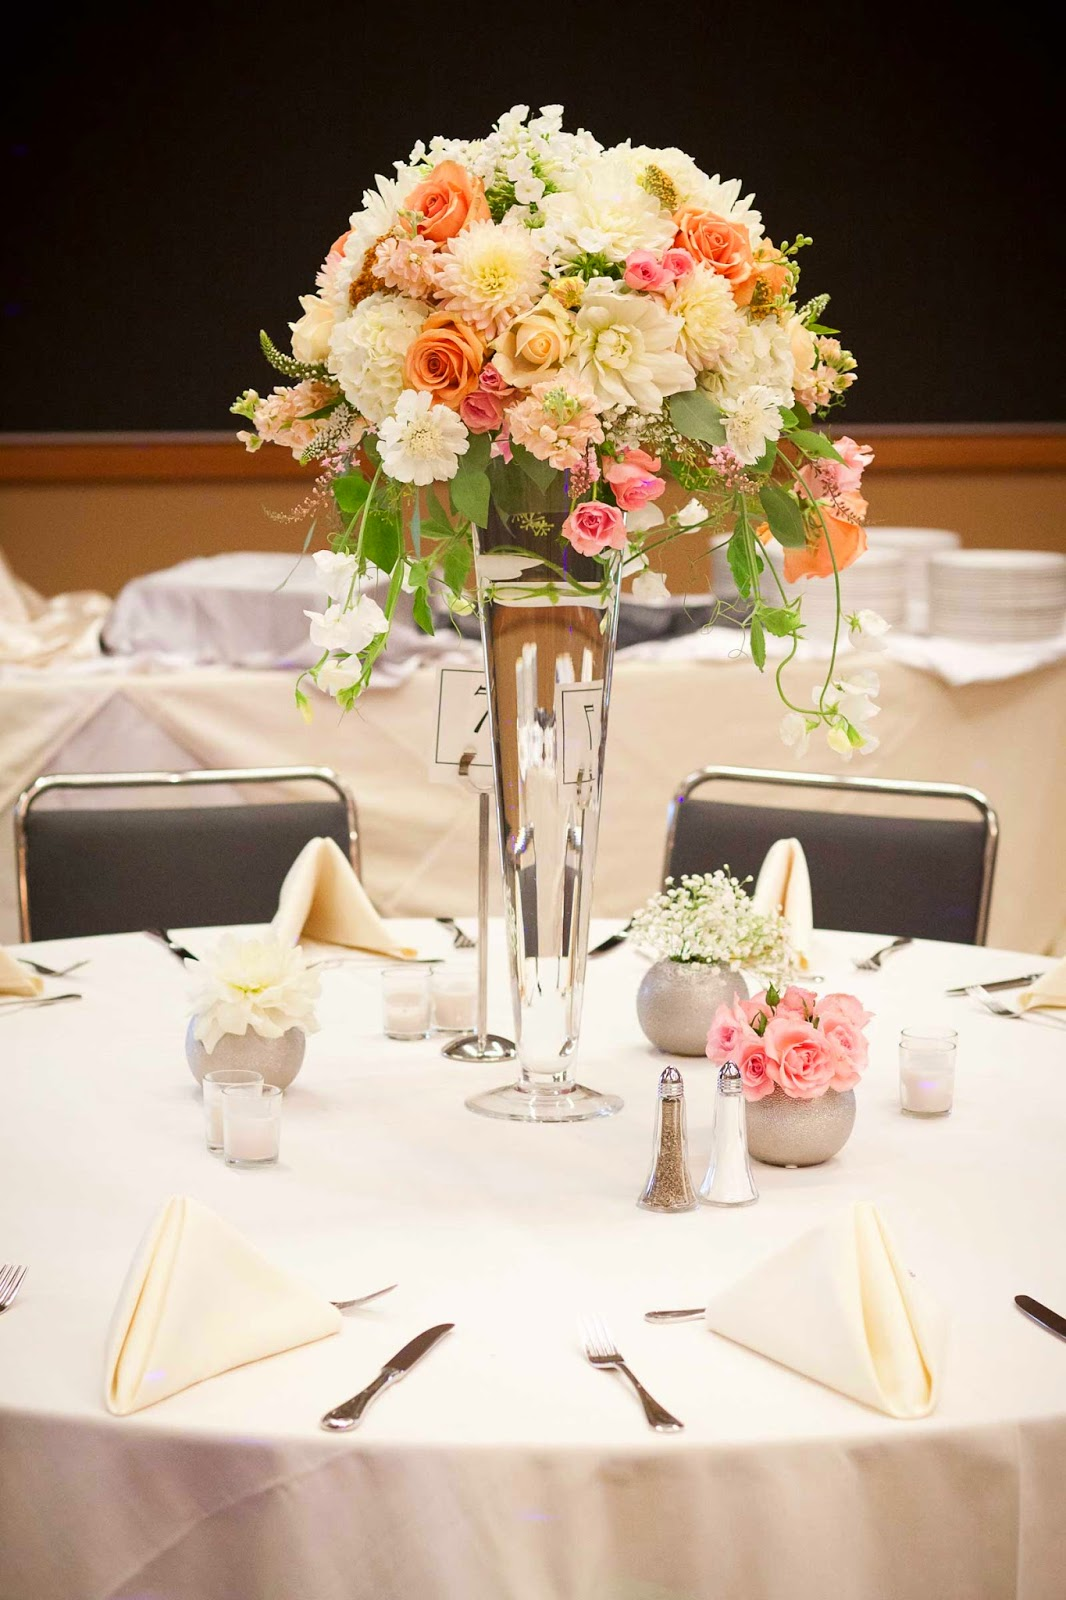 Wedding centerpiece vases ideas best